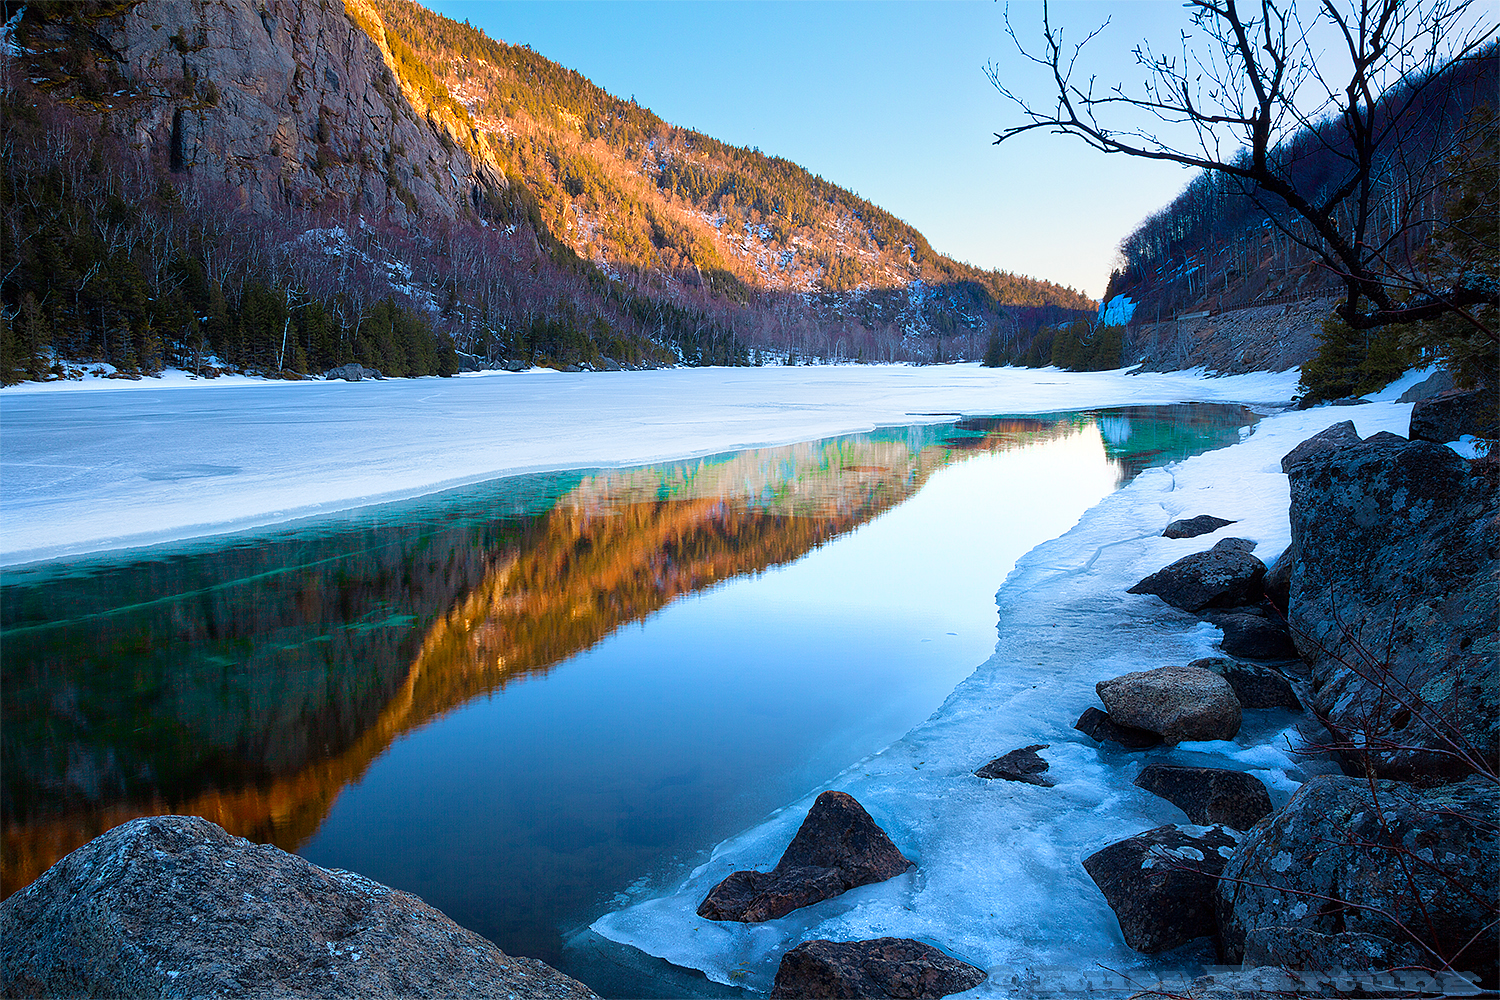 As Cascade Lake melted in the Spring, the ice under the surface of the water took on a turquoise-green hue that set off the warm glow of the late sun on the mountains.